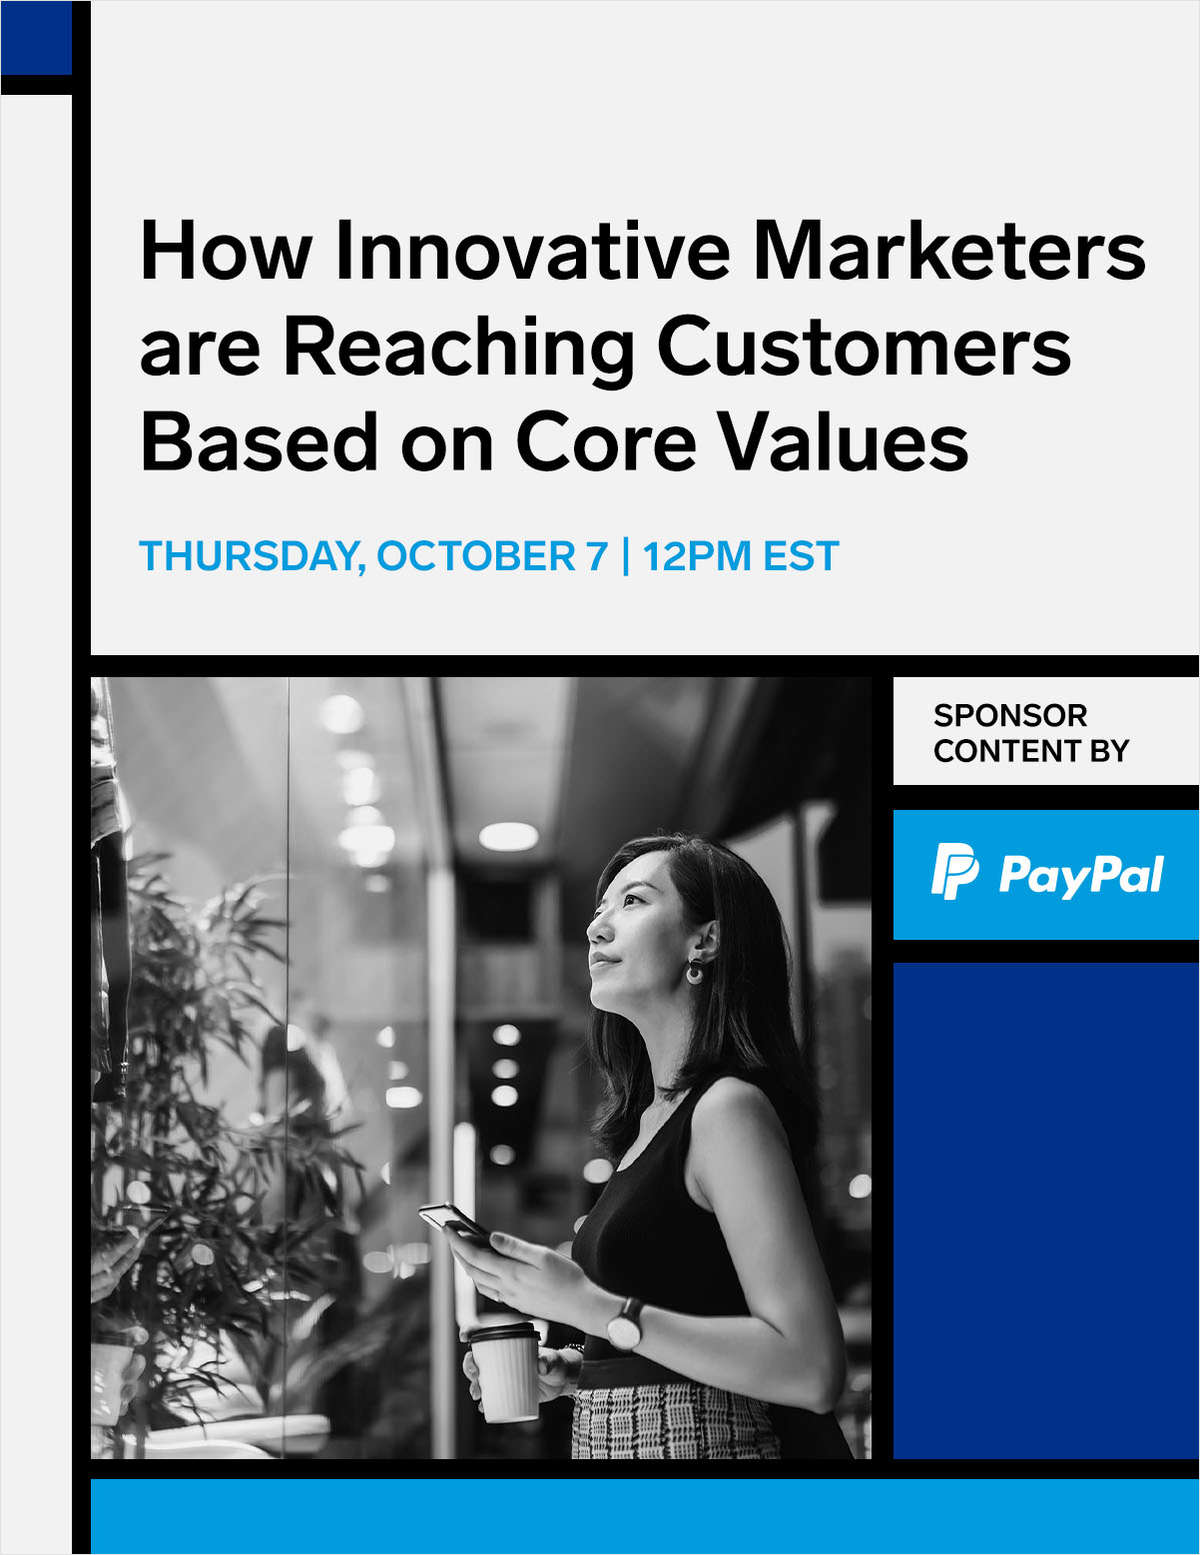 How Innovative Marketers are Reaching Customers Based on Core Values